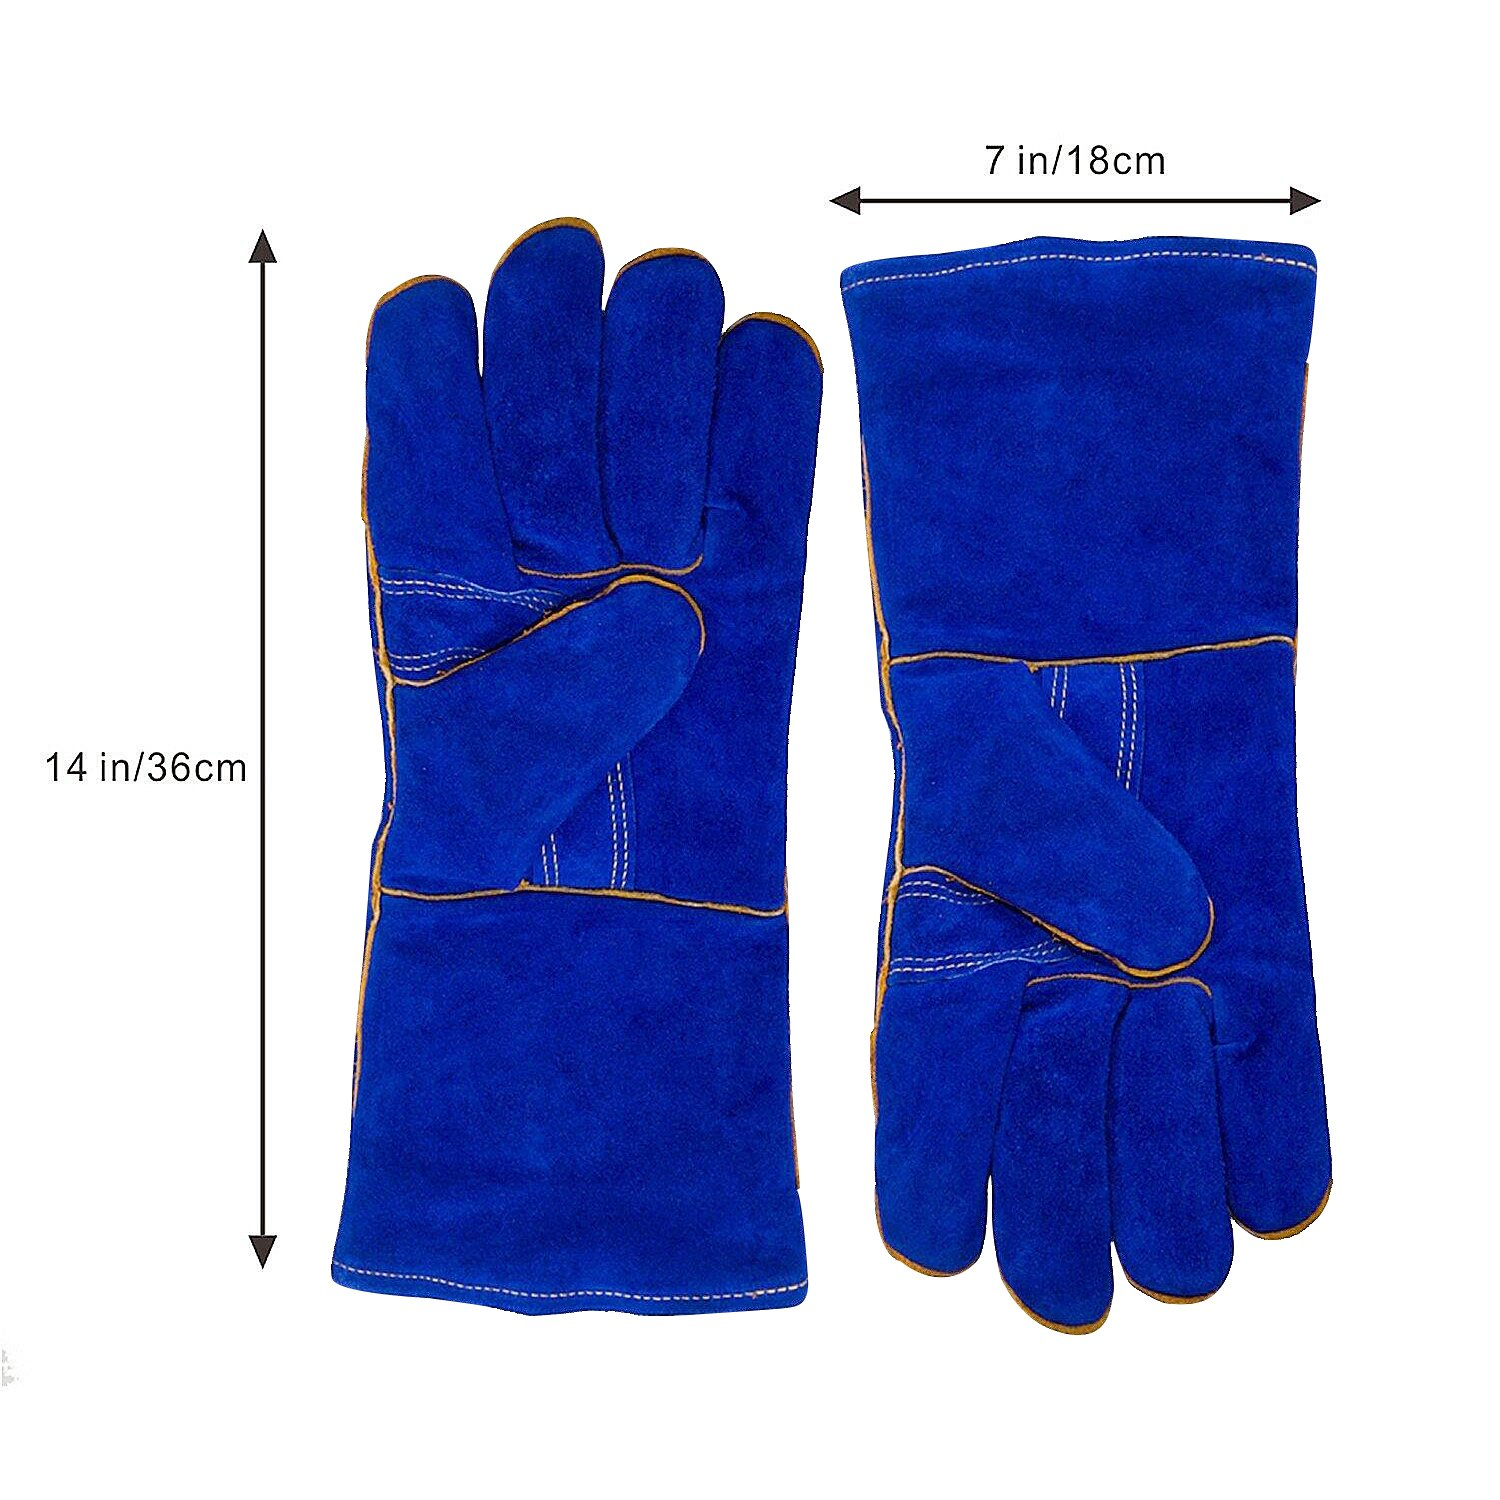 KIM YUAN Leather Welding Gloves - Heat/Fire Resistant, Perfect for Gardening/Oven/Grill/Mig/Fireplace/Stove/Pot Holder/ Tig Welder/Animal Handling/BBQ - 14inches by KIM YUAN (Image #6)